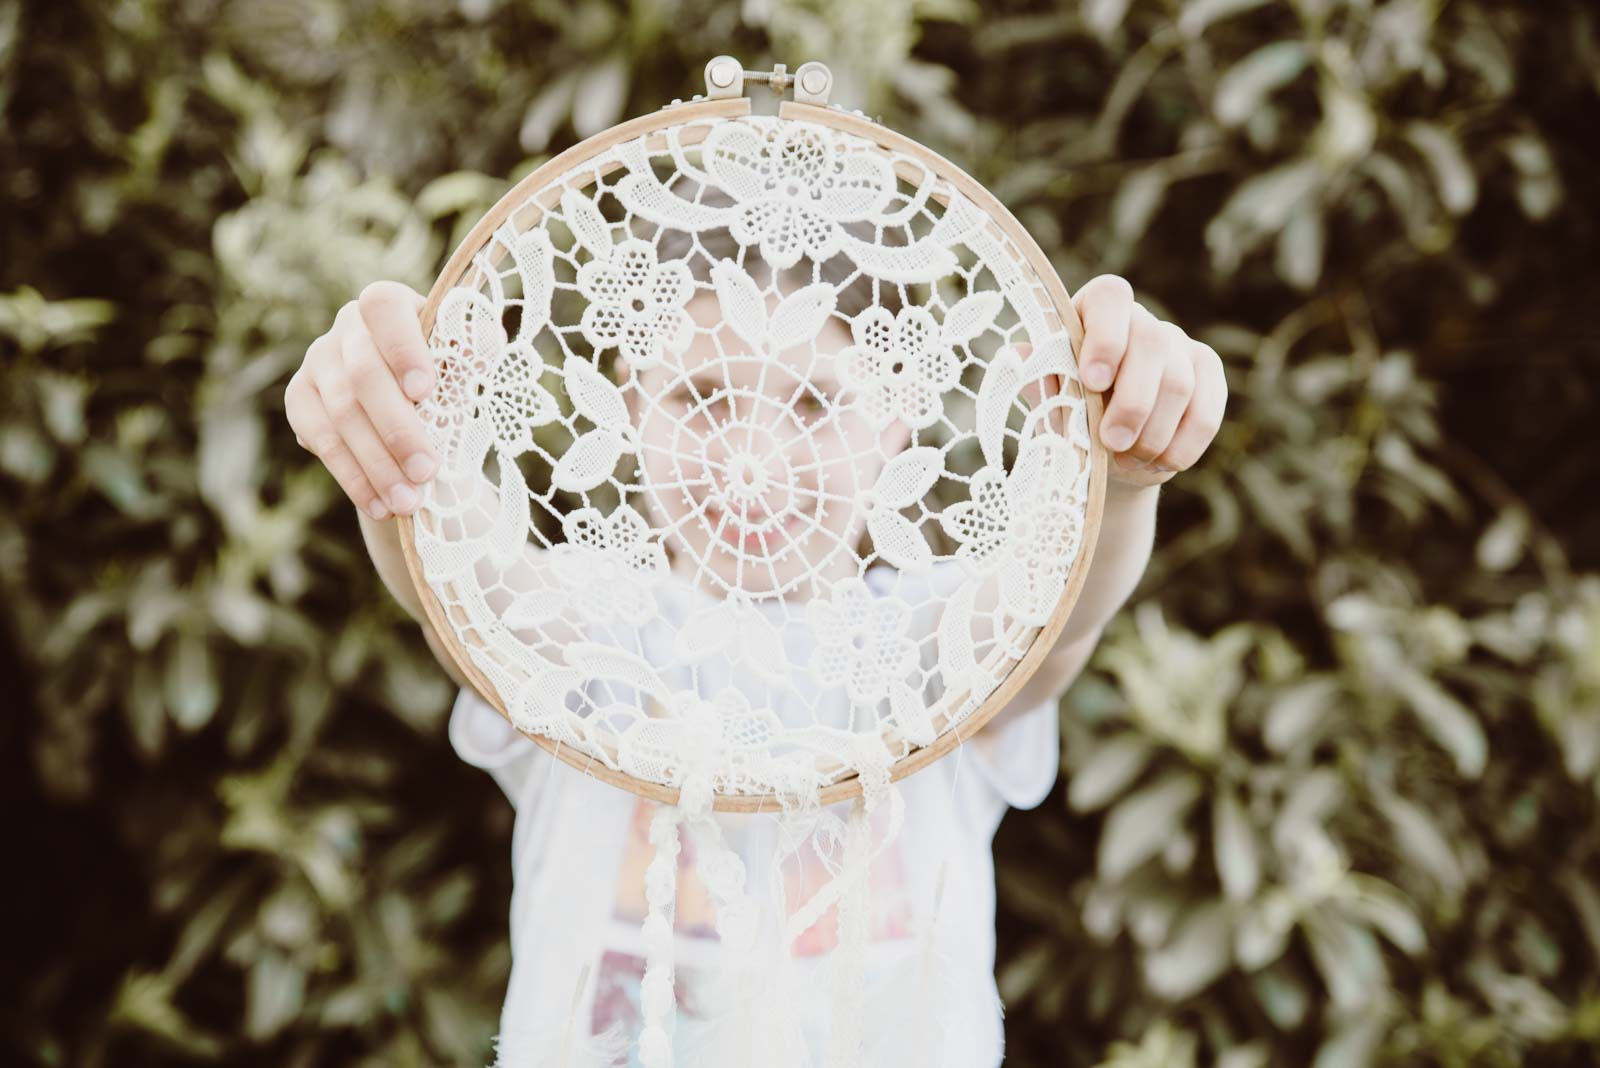 DIY-Dreamcatcher-Boho-Wedding-Dekoration-Traumfaenger-Hochzeitsdekoration-51